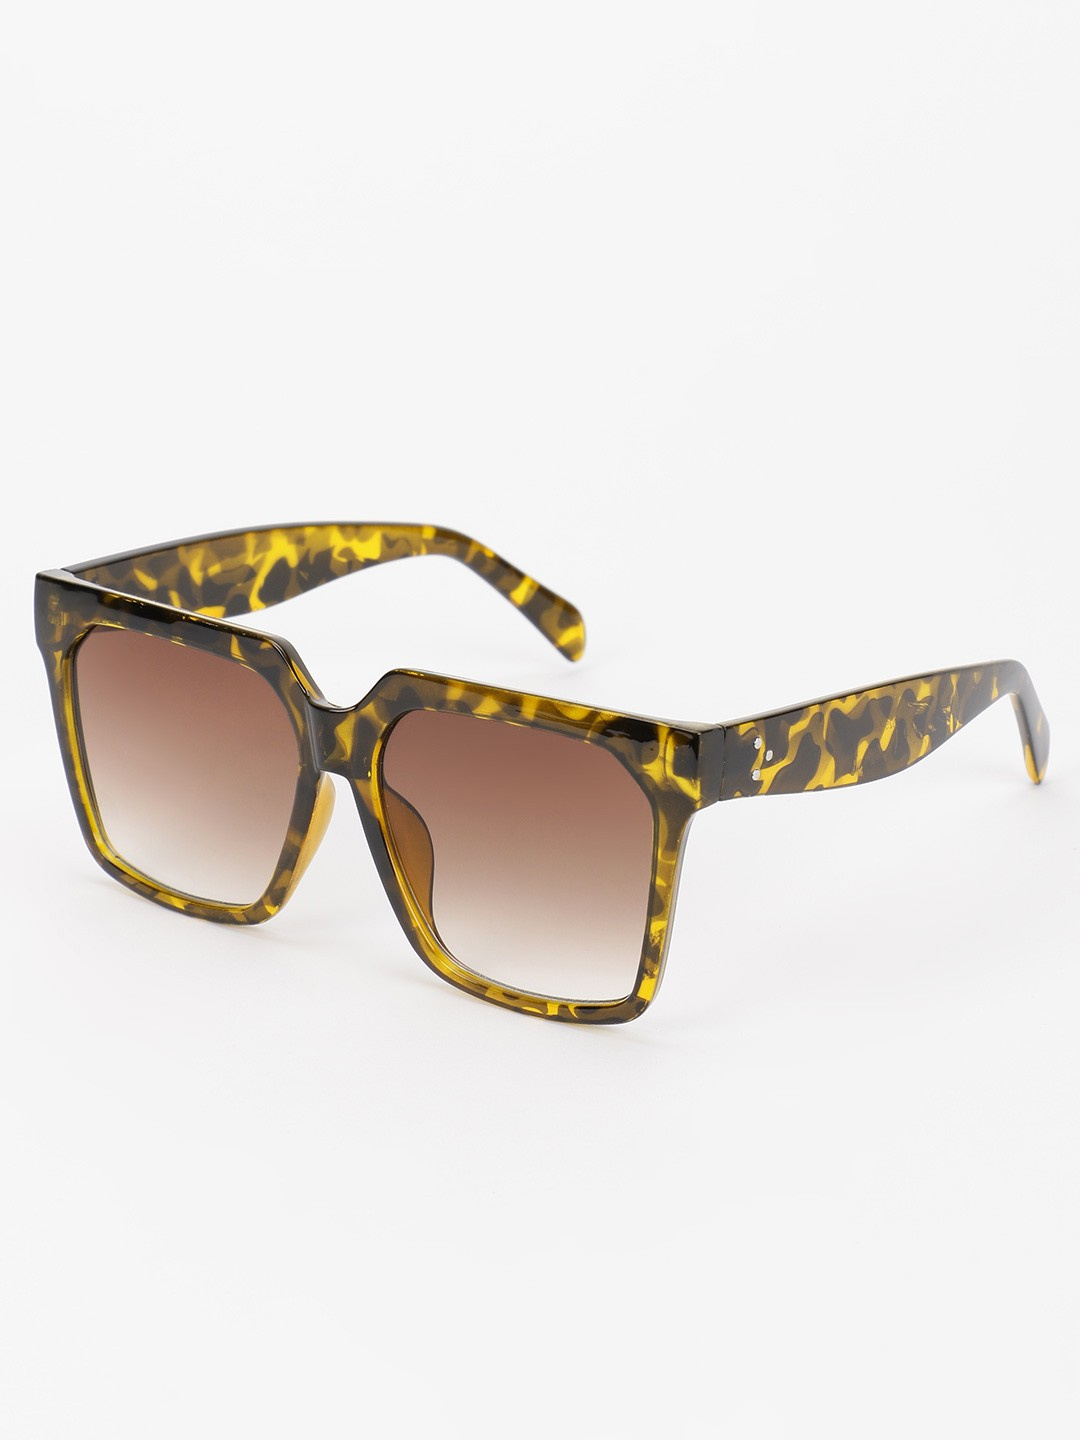 Pataaka Brown Tinted Lens Classic Textured Sunglasses 1